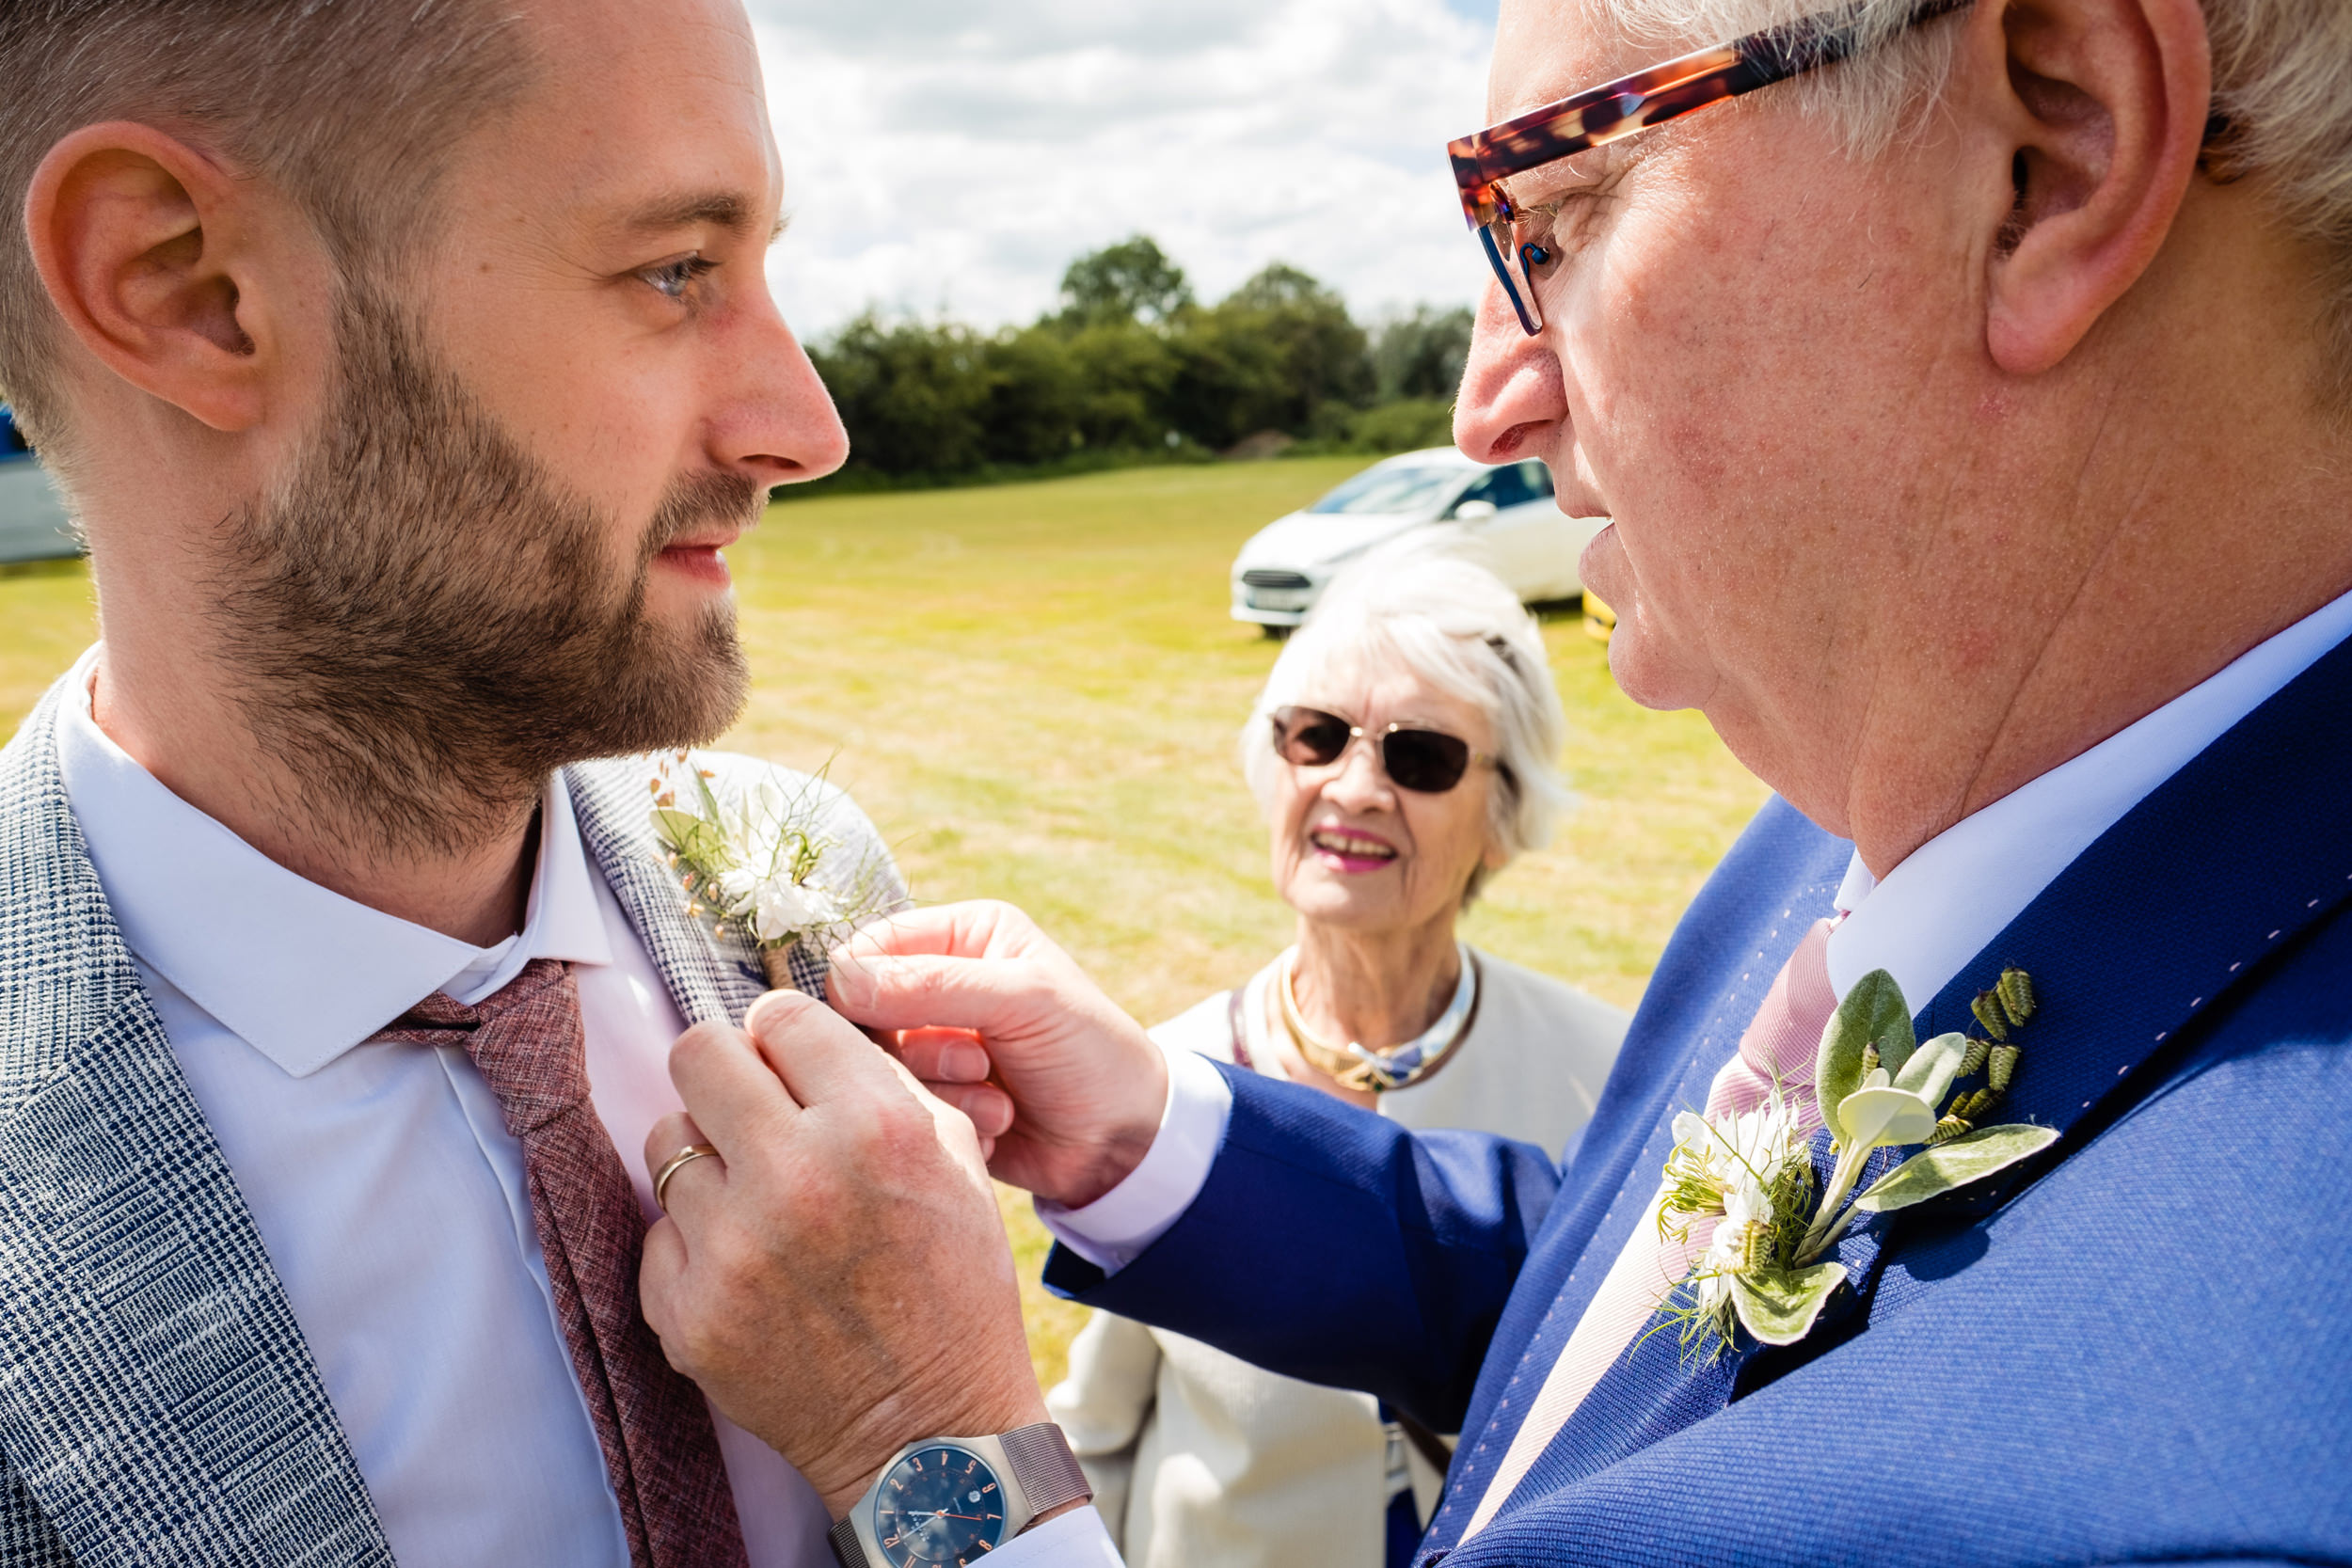 groom getting his buttonhole flower fixed by his dad. maybush wedding co wedding photography by emma and rich.